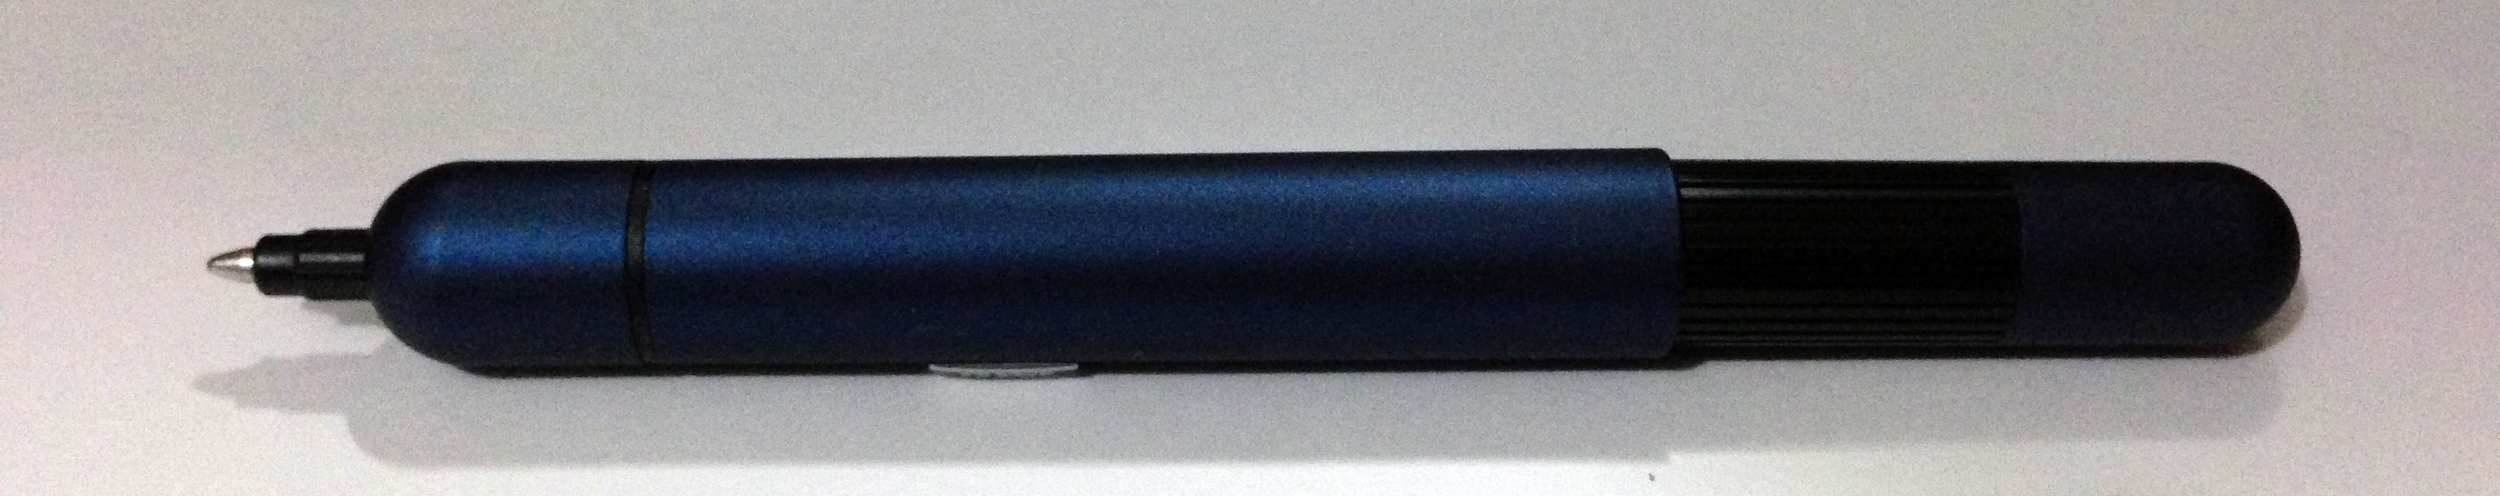 Lamy Pico extended